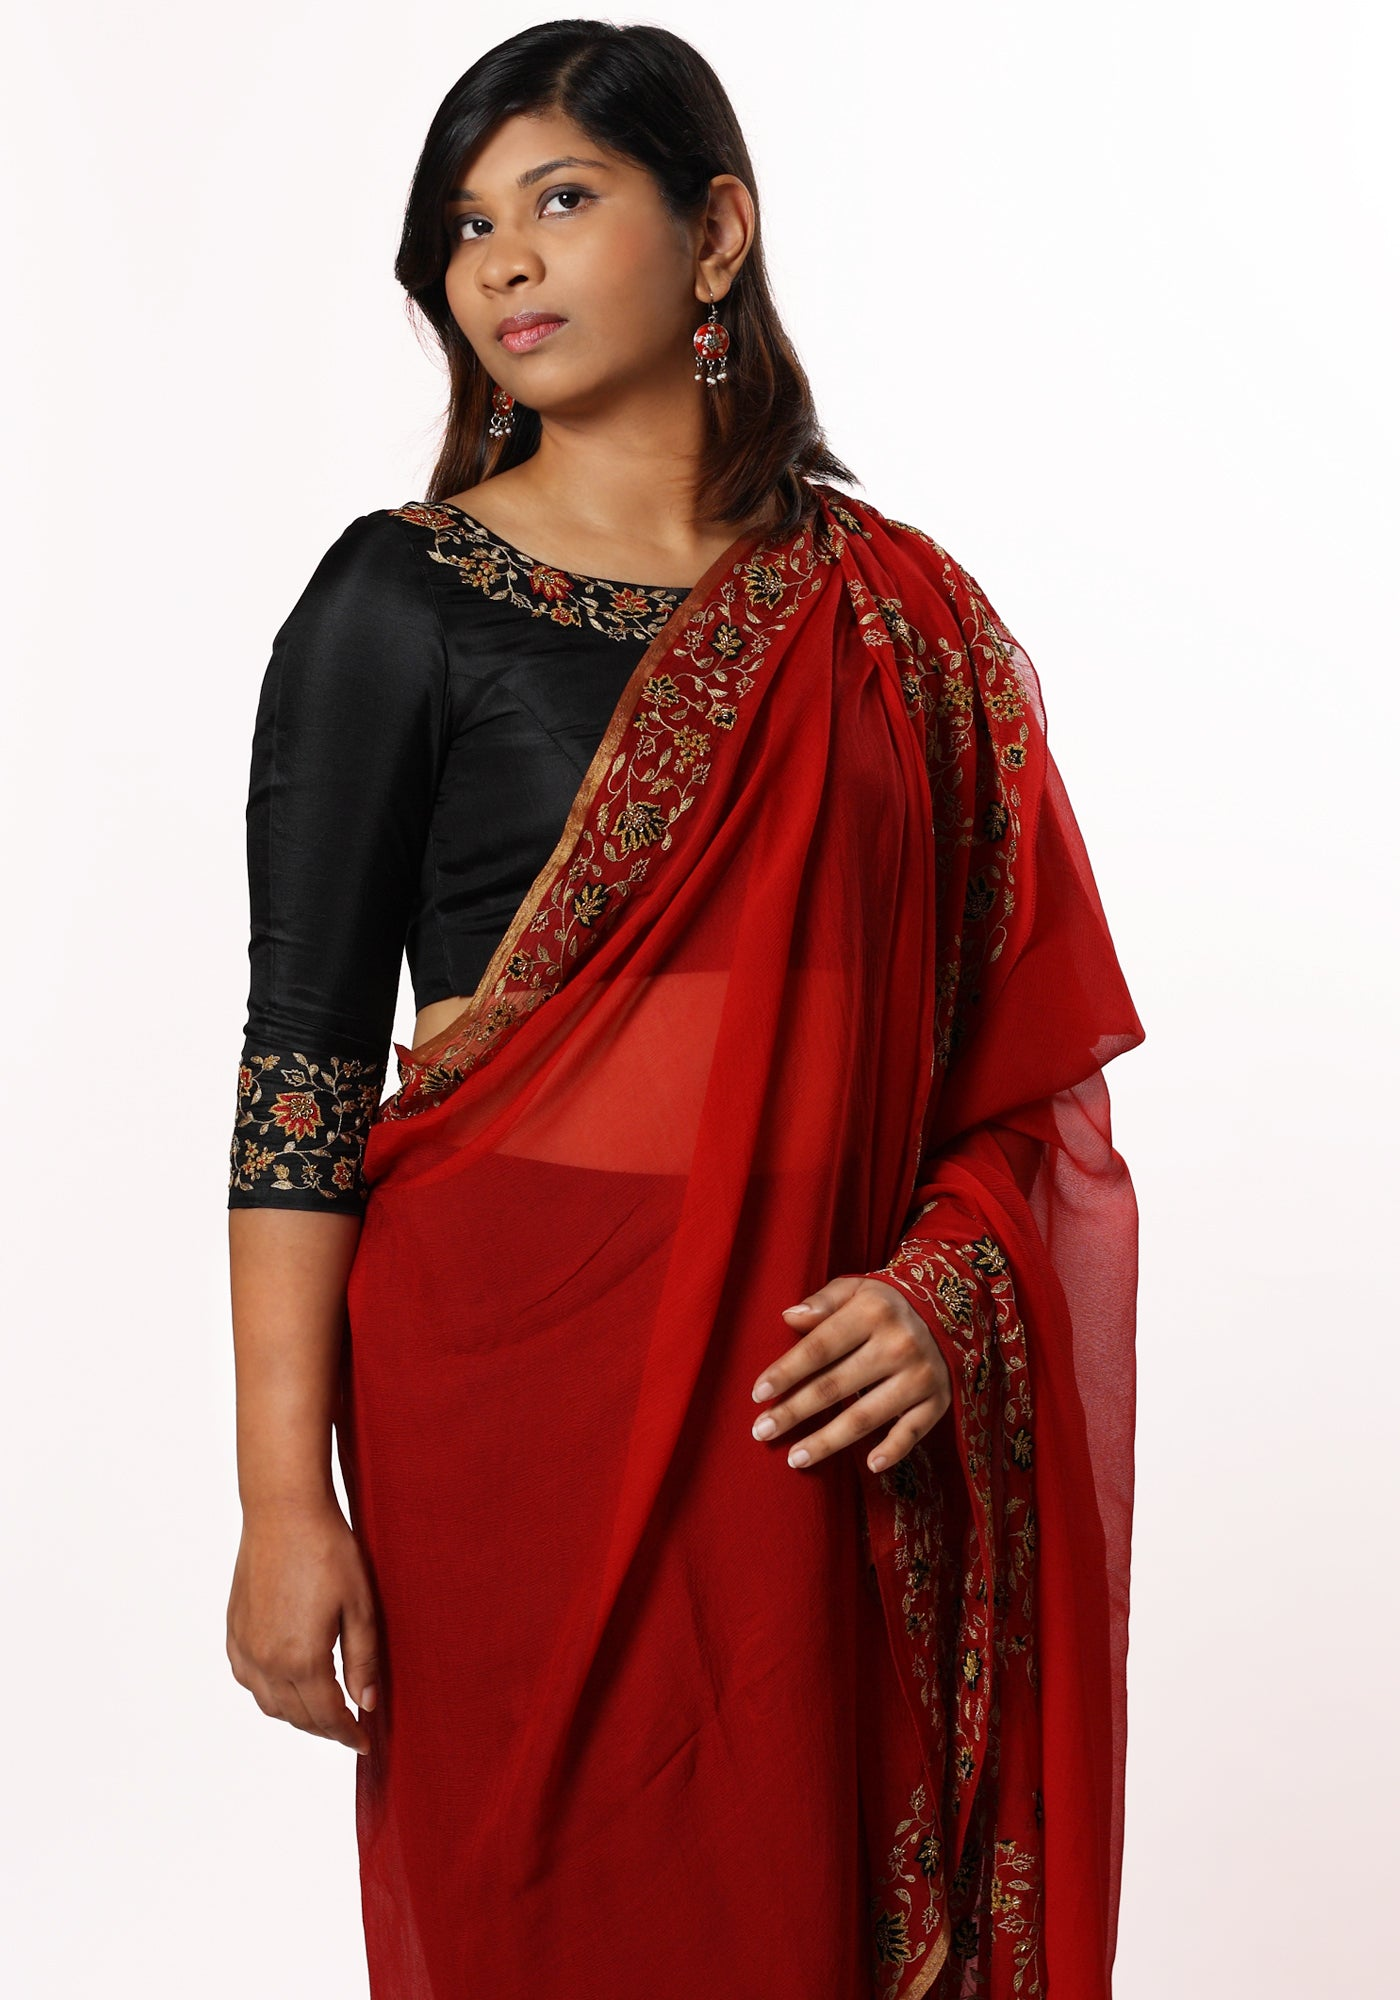 Hand Embroidered Stole in Red Silk Georgette - MINC ecofashion